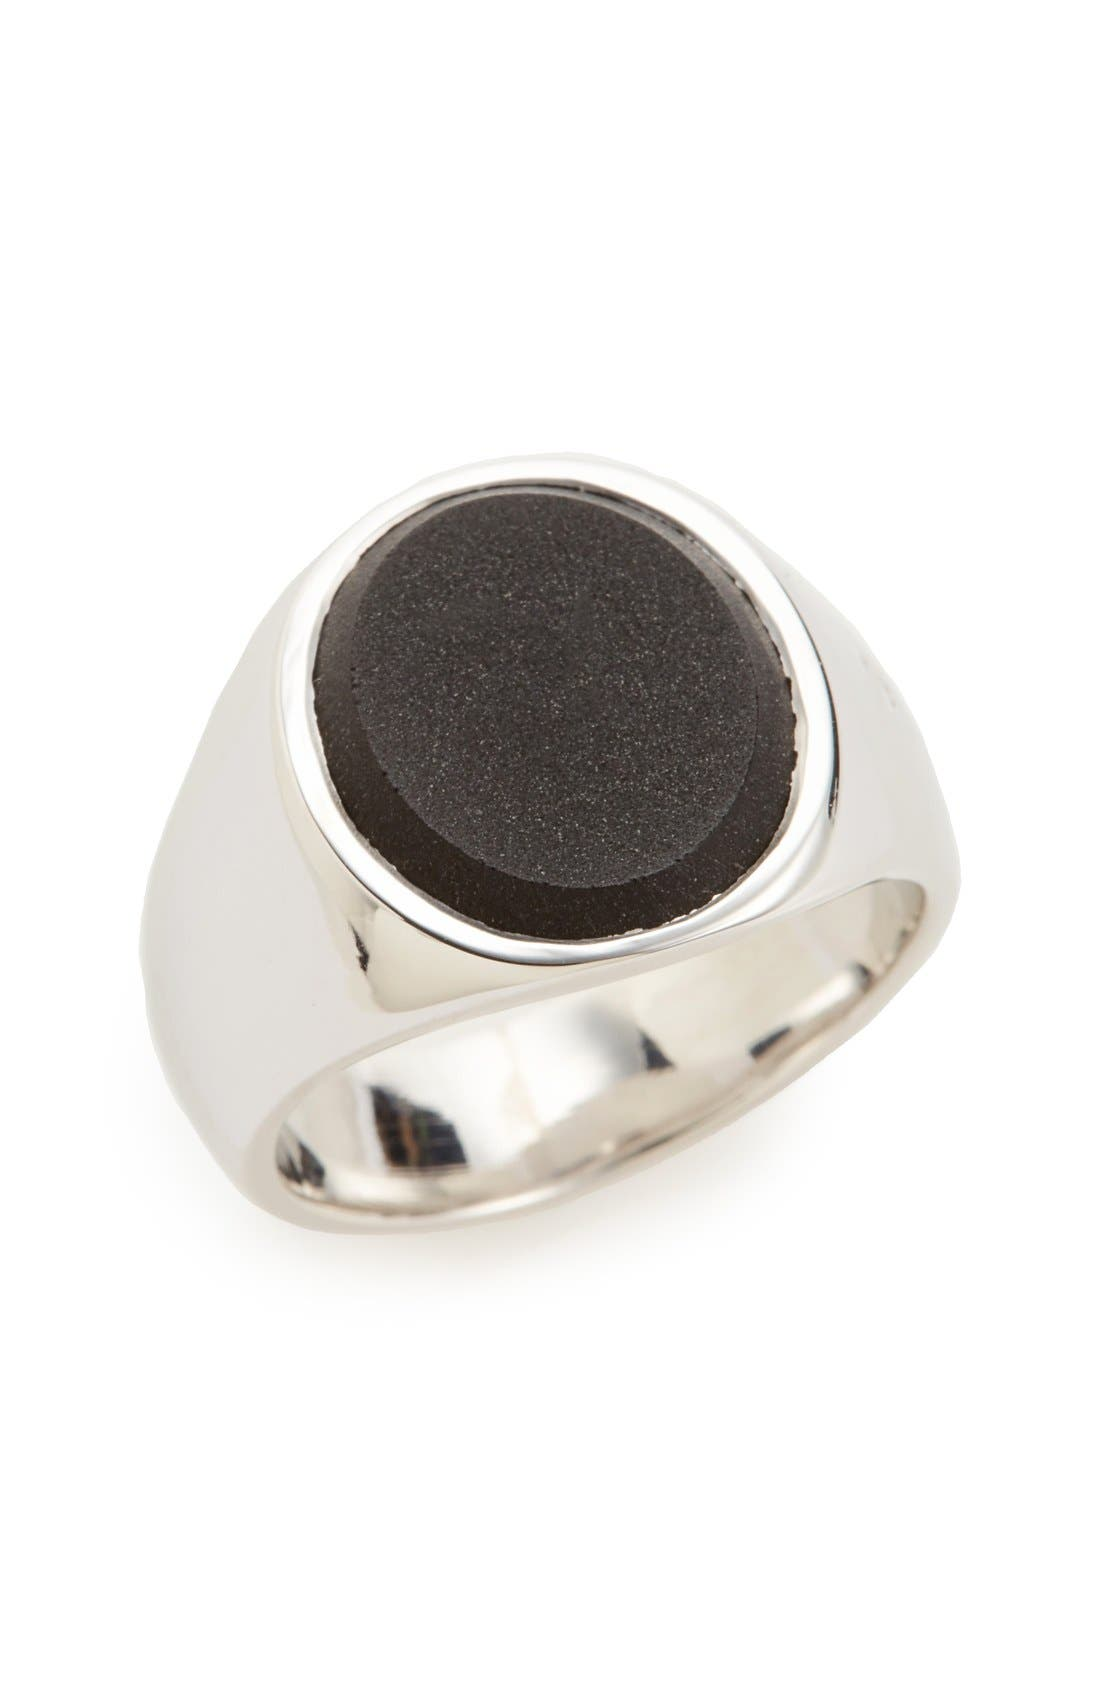 Patriot Collection Oval Black Onyx Signet Ring,                         Main,                         color, 040